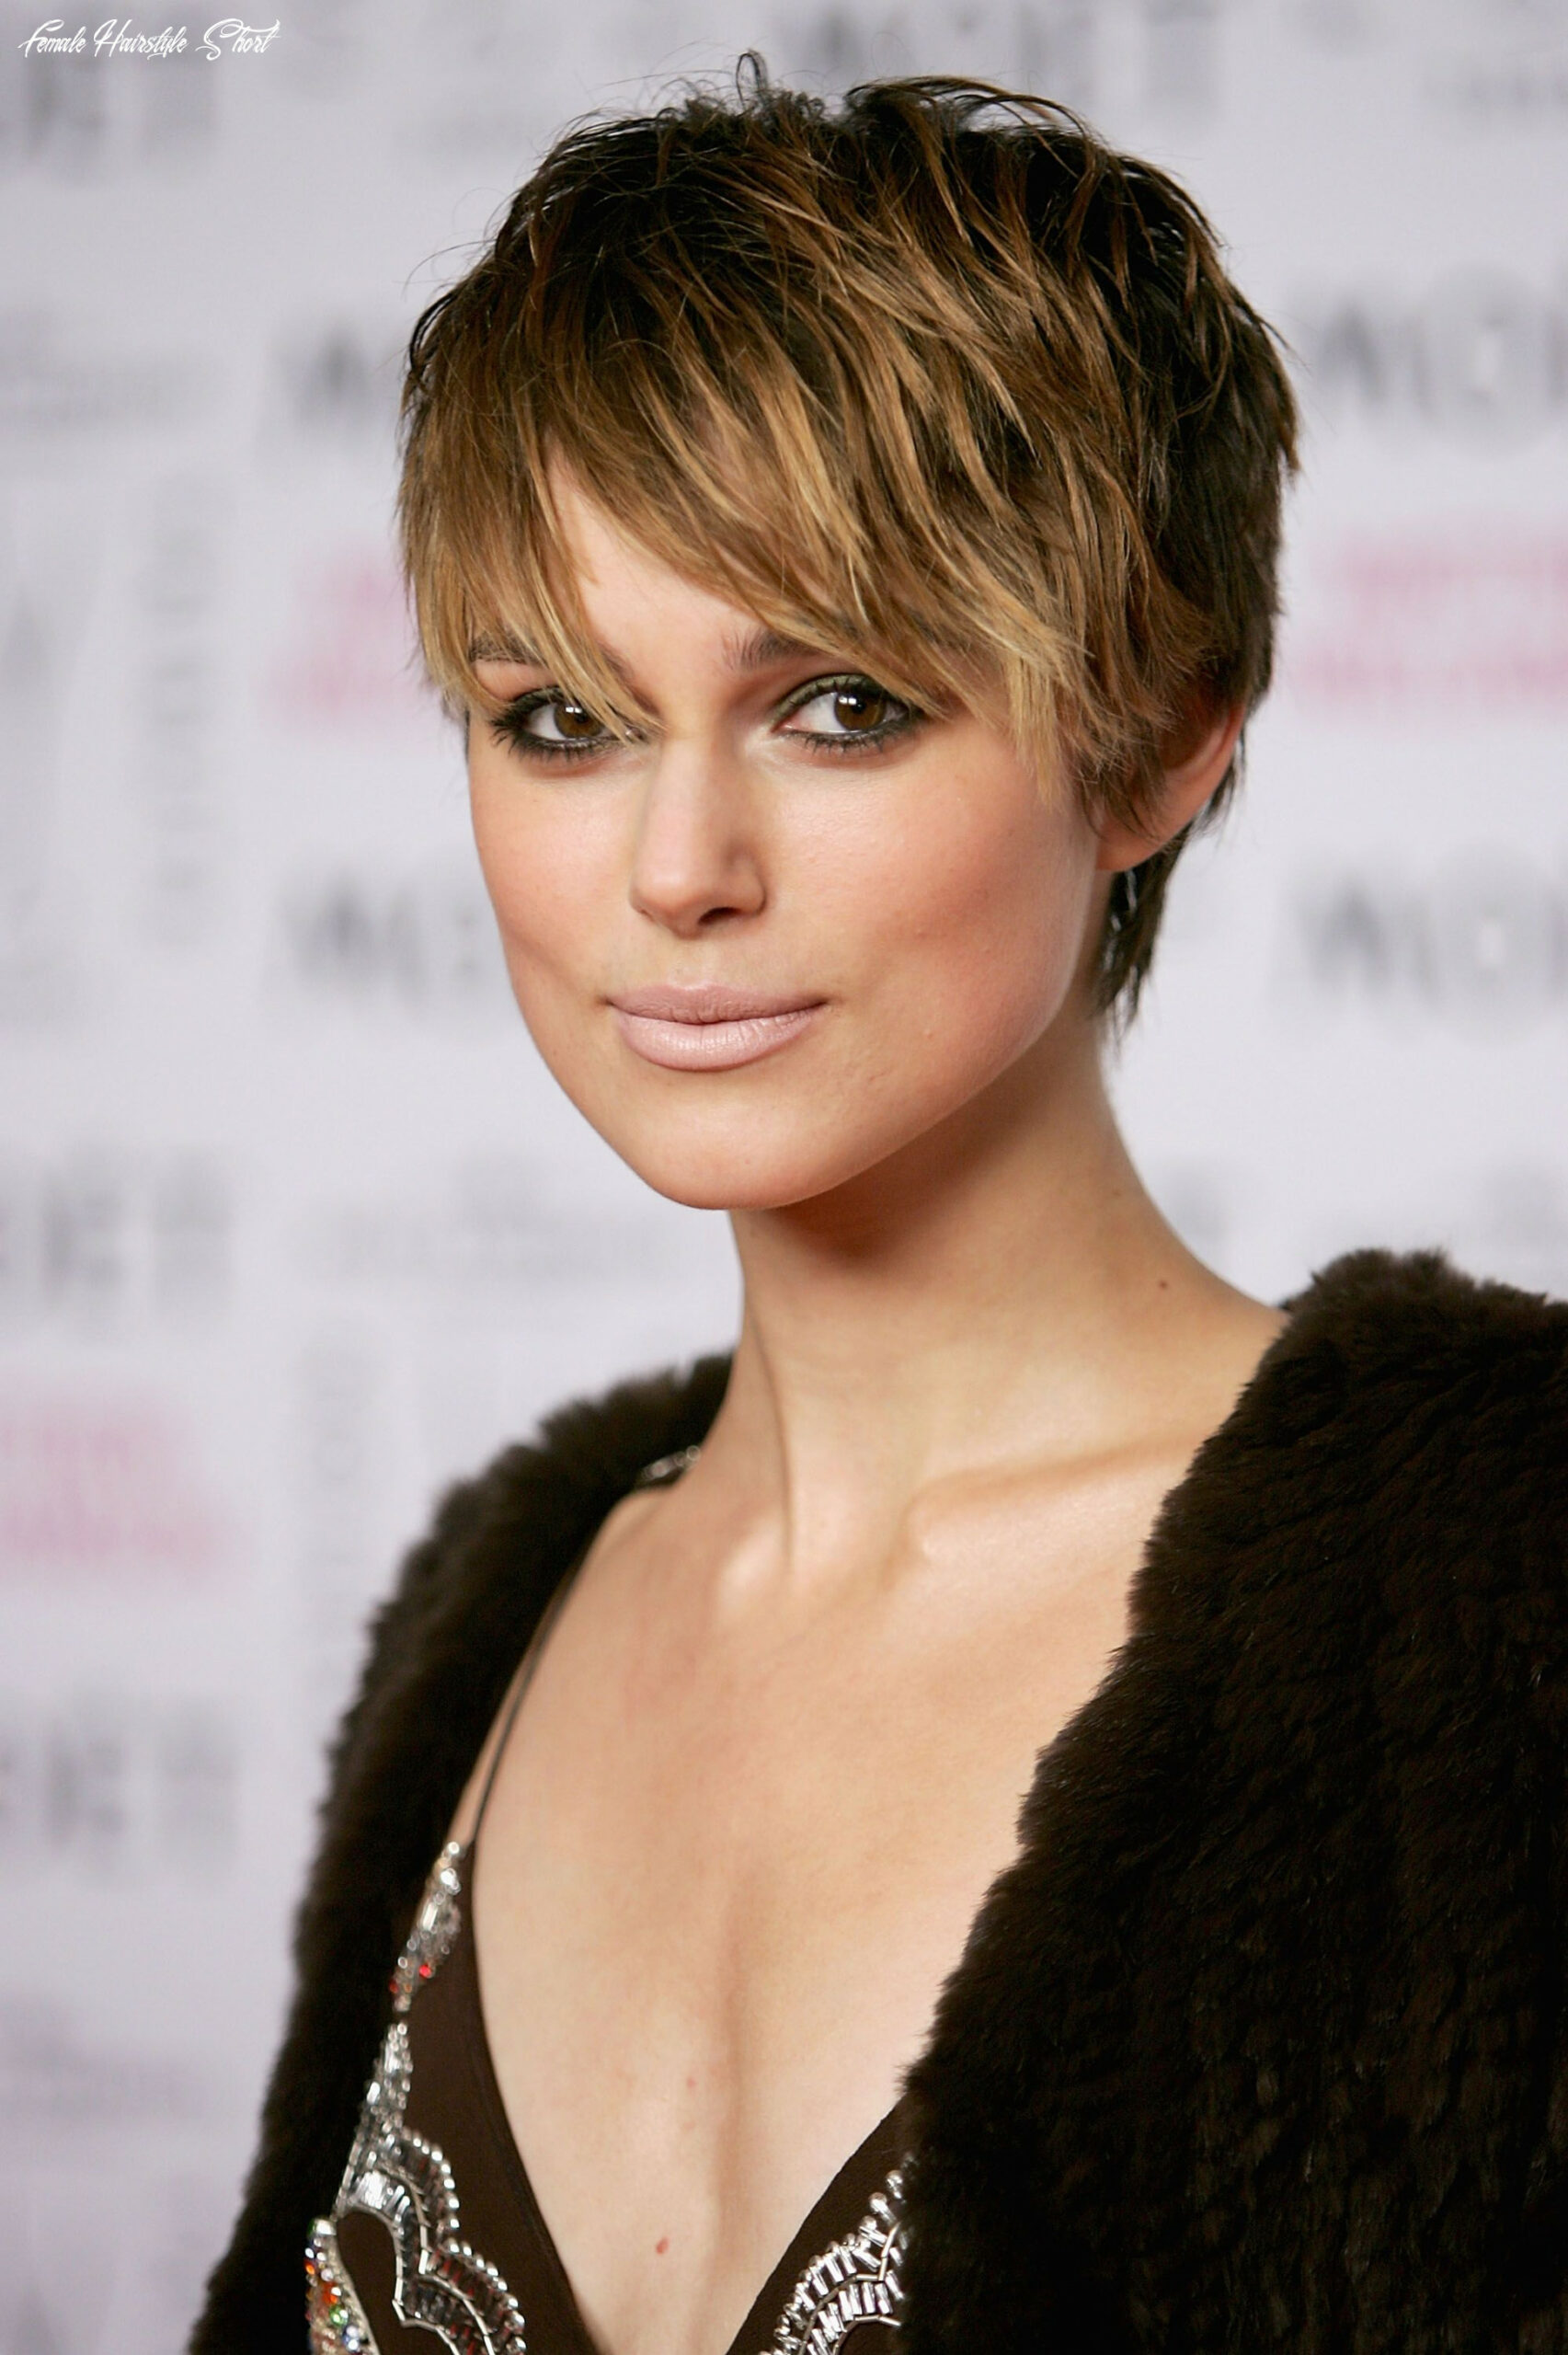 9 best short hairstyles, haircuts & short hair ideas for 9 female hairstyle short